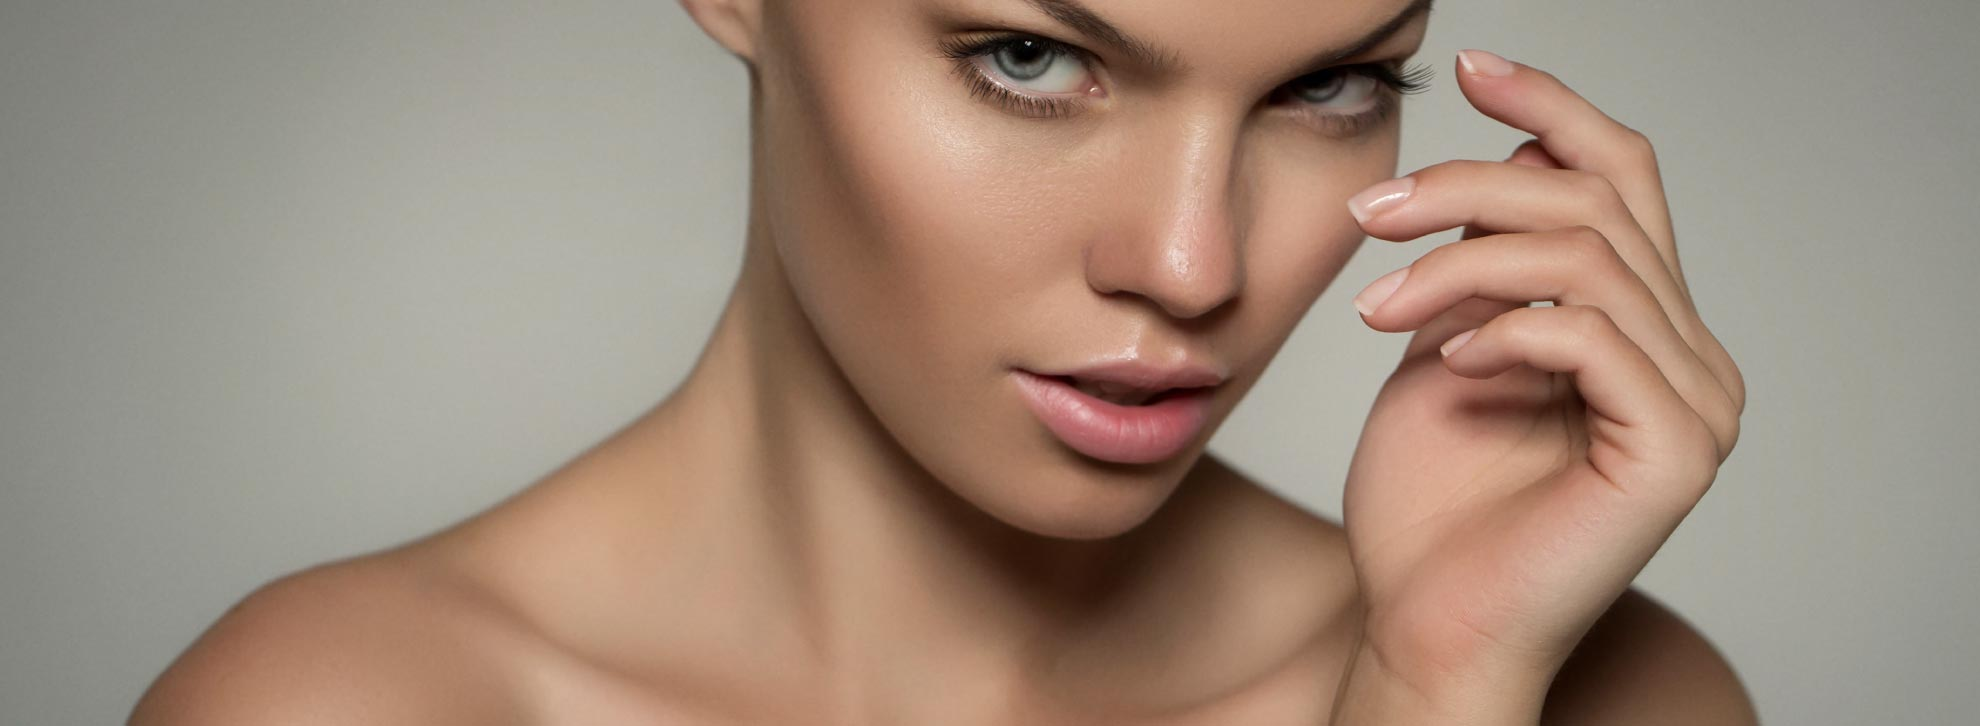 Predicted Cosmetic Surgery Trends For 2014